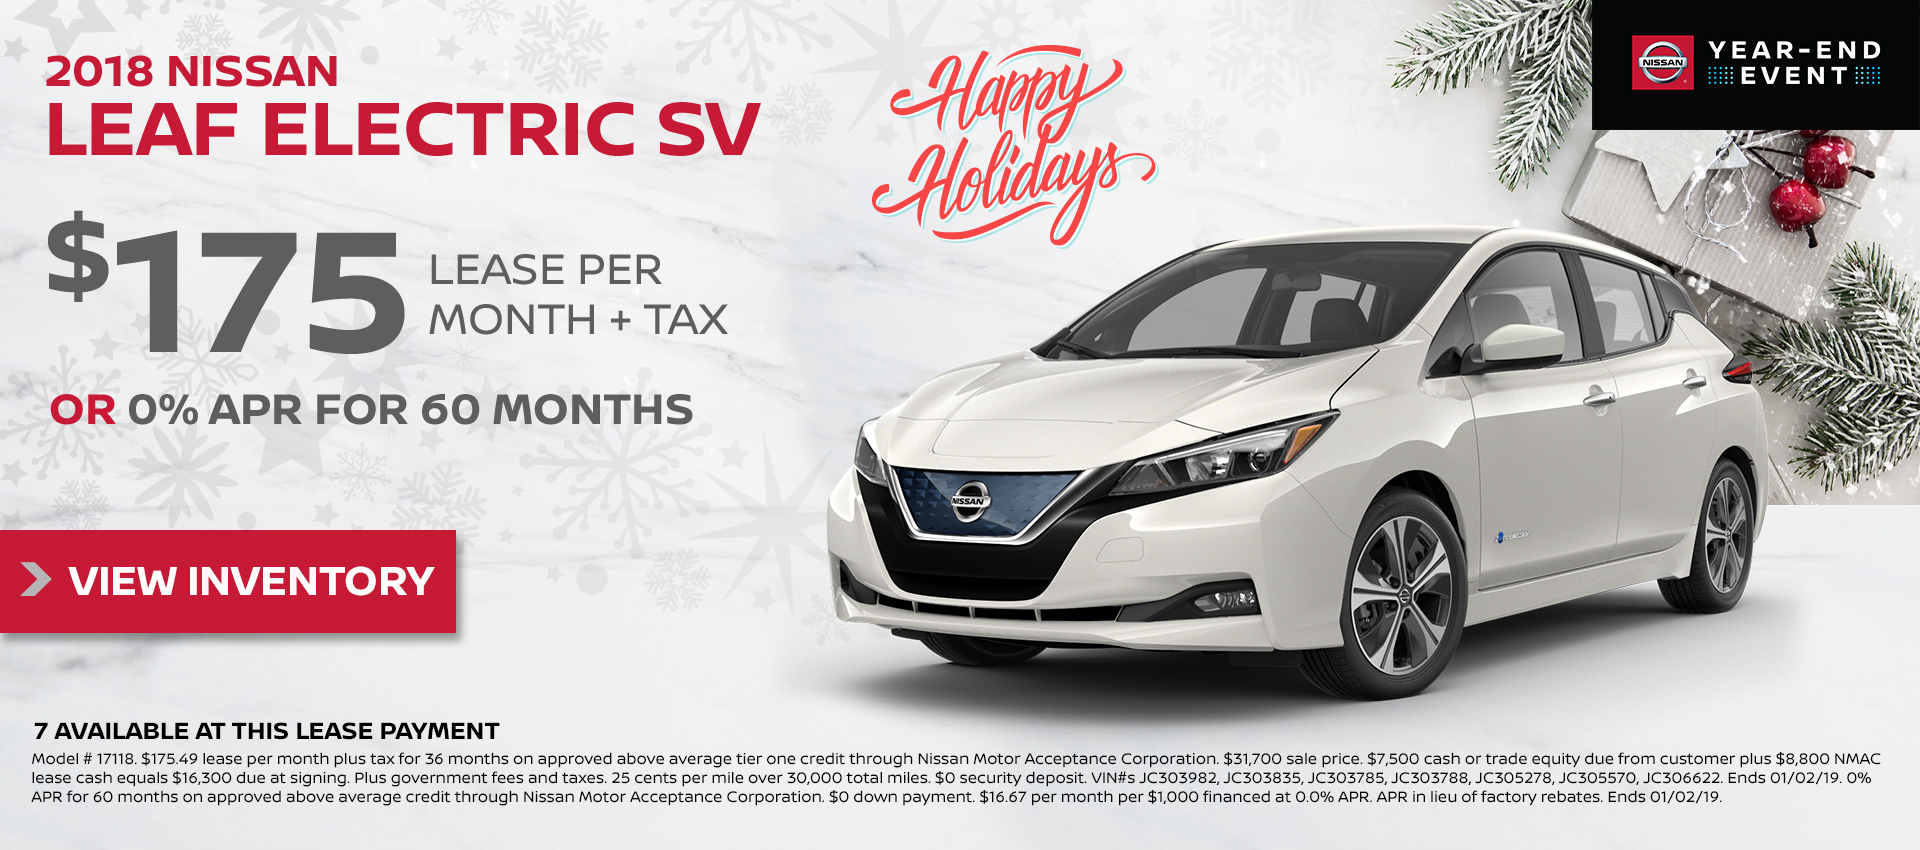 Mossy Nissan - Leaf $175 Lease HP